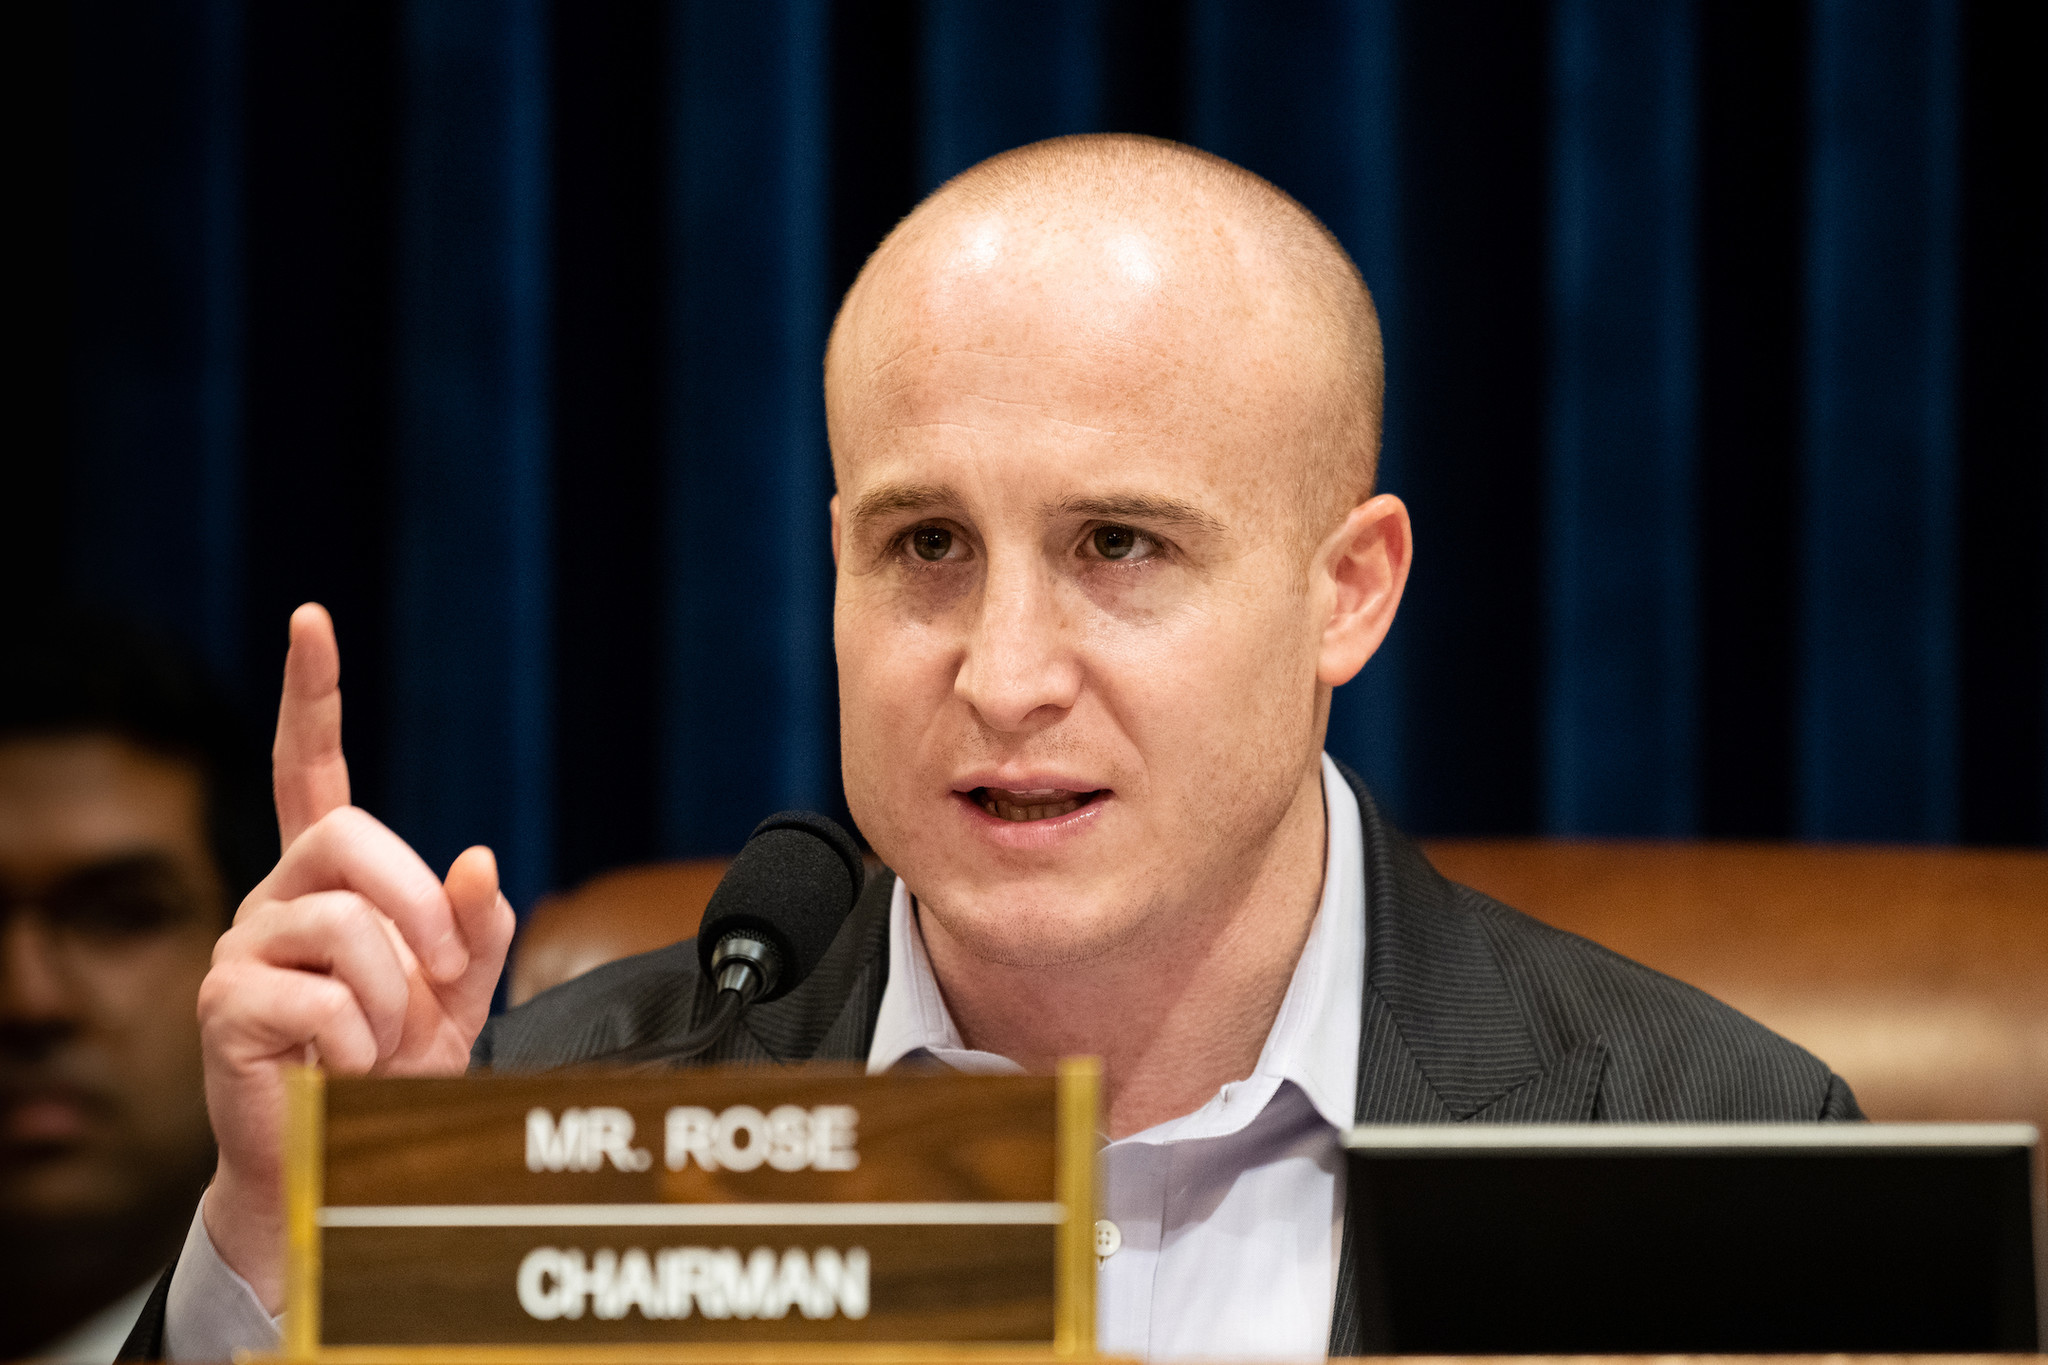 N.Y. Rep. Max Rose deploys for National Guard service in war against coronavirus